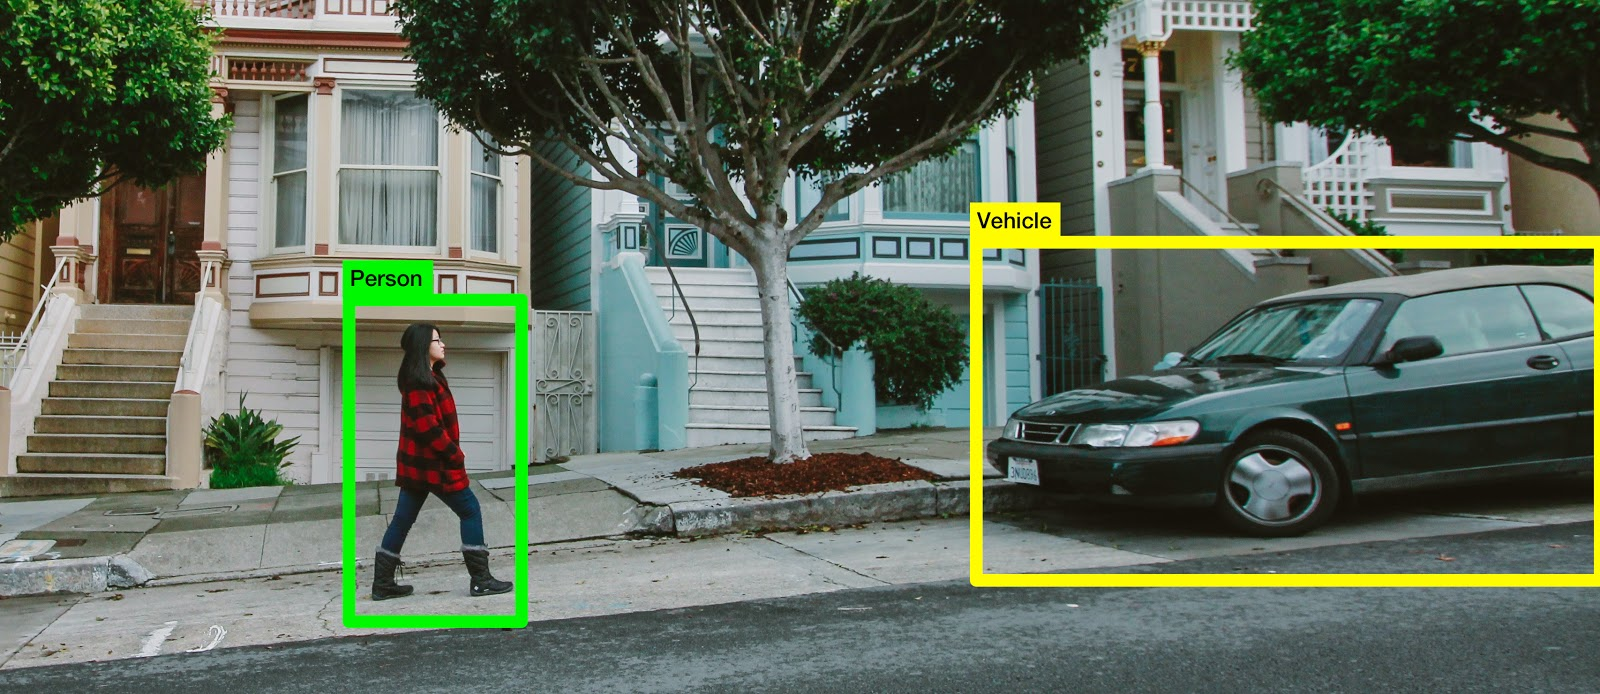 Machine learning explained classification, detection and segmentation-3